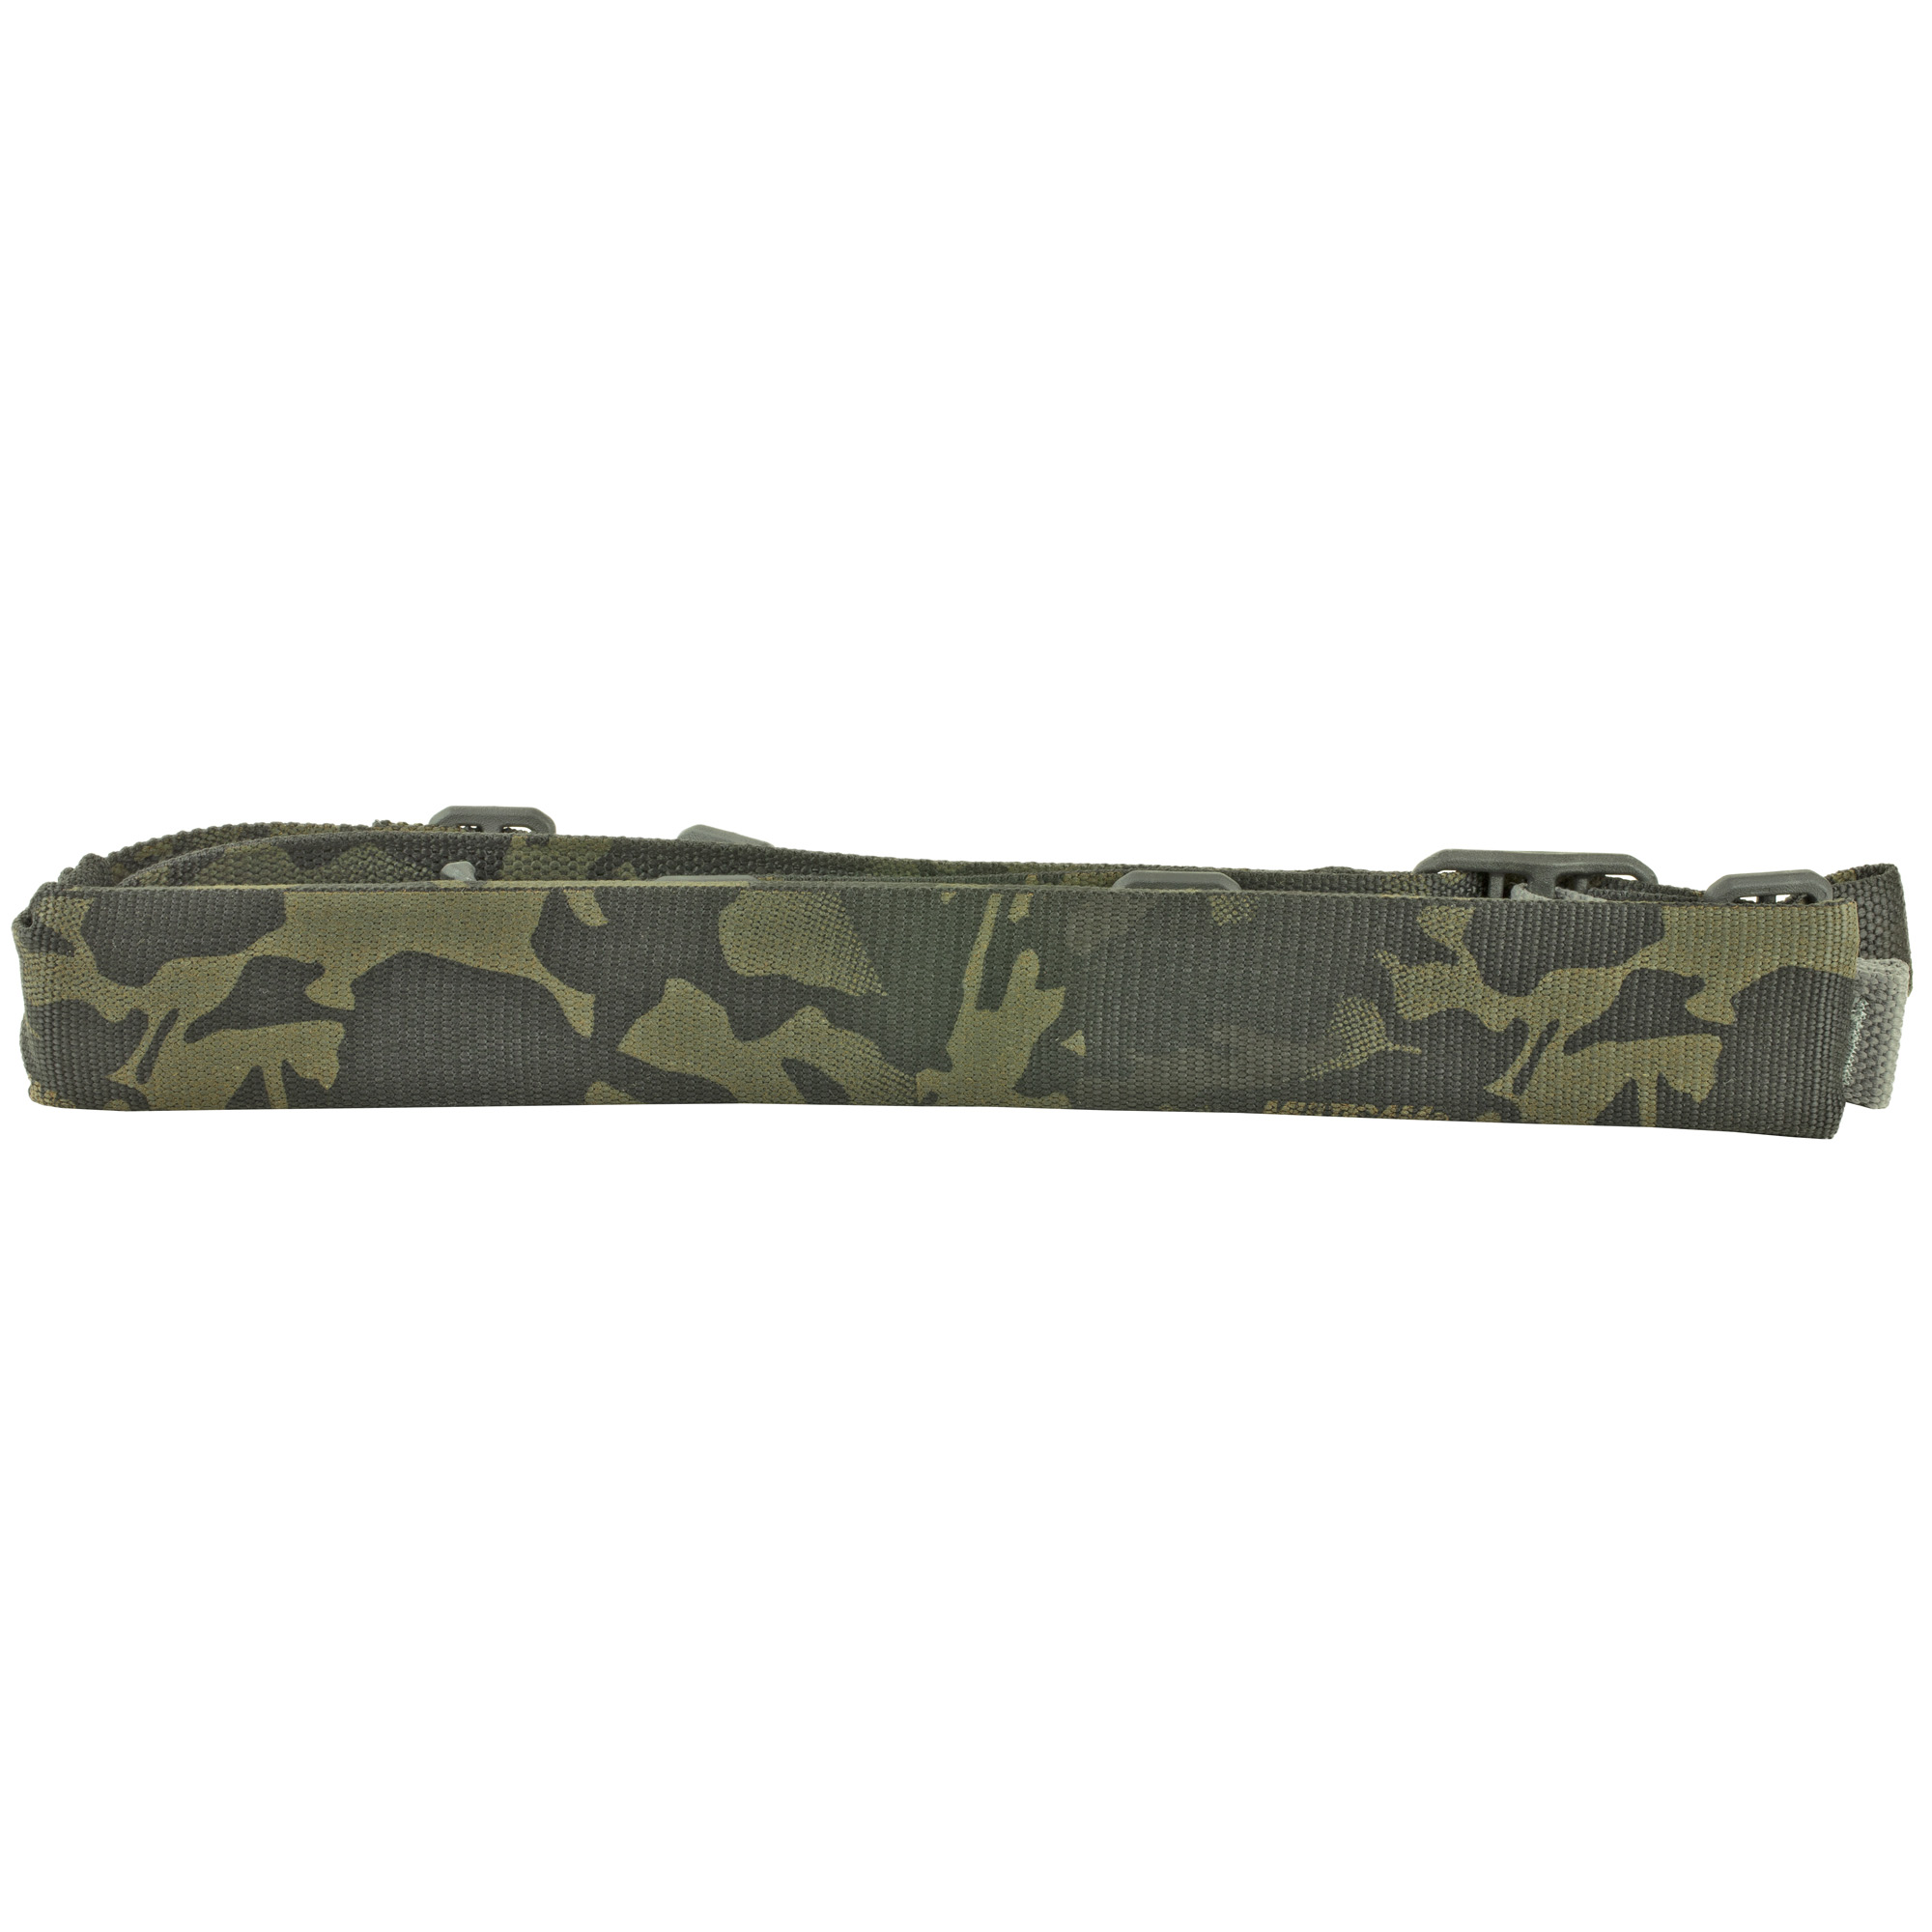 Bl Force Vickers Padded 2pt Slng Mcb